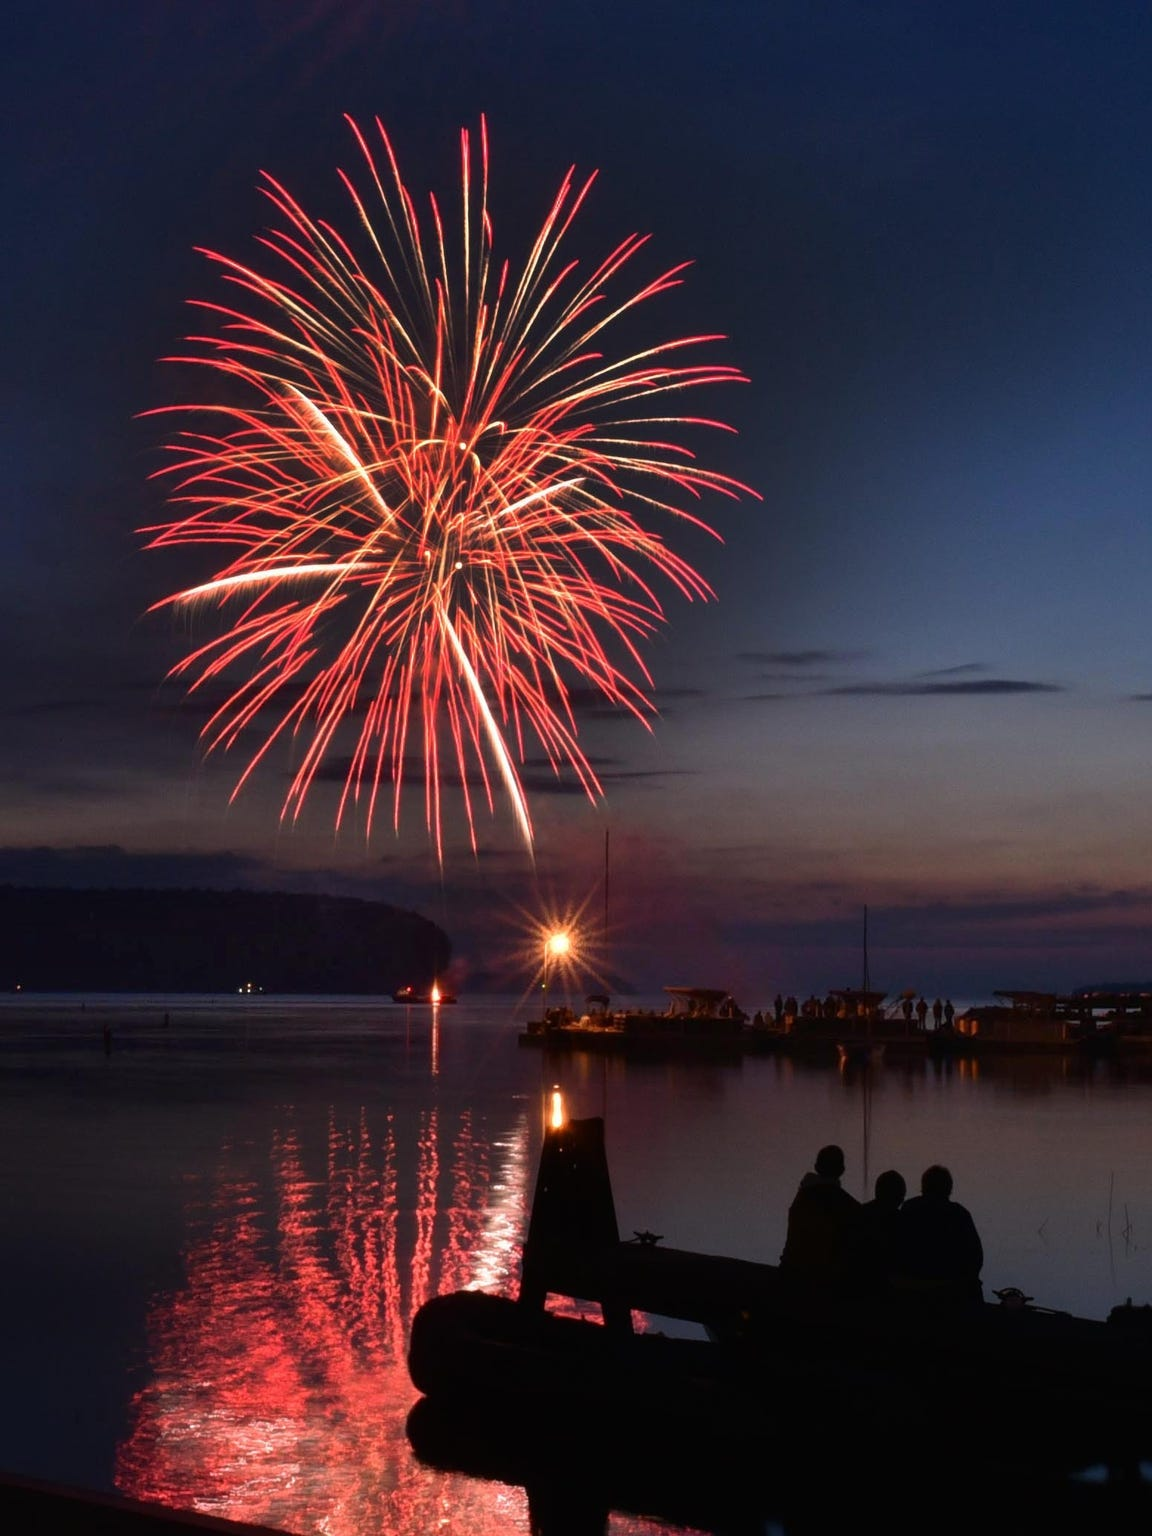 Fireworks will be blasting all over the state come